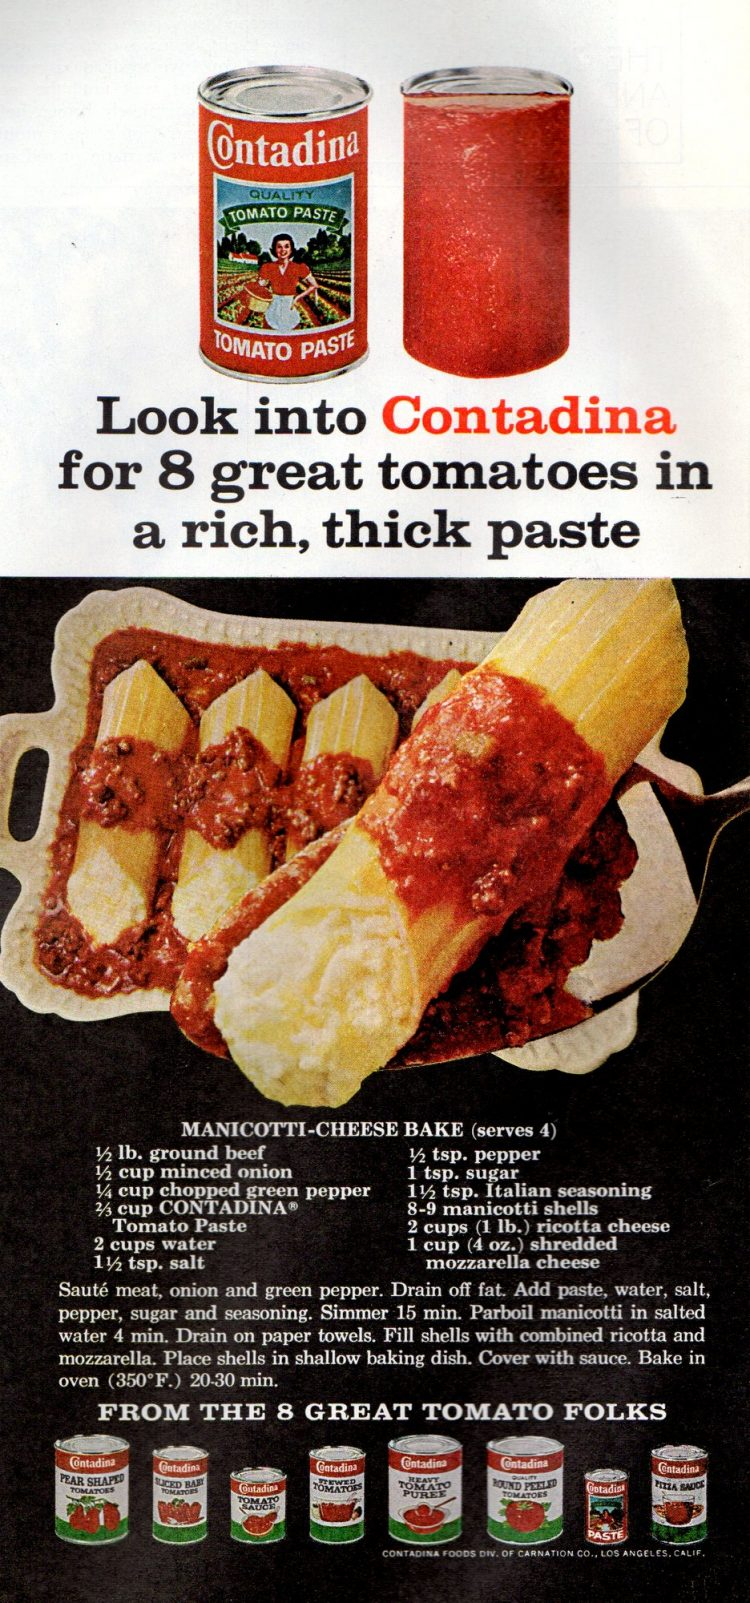 Manicotti-Cheese Bake (1968)